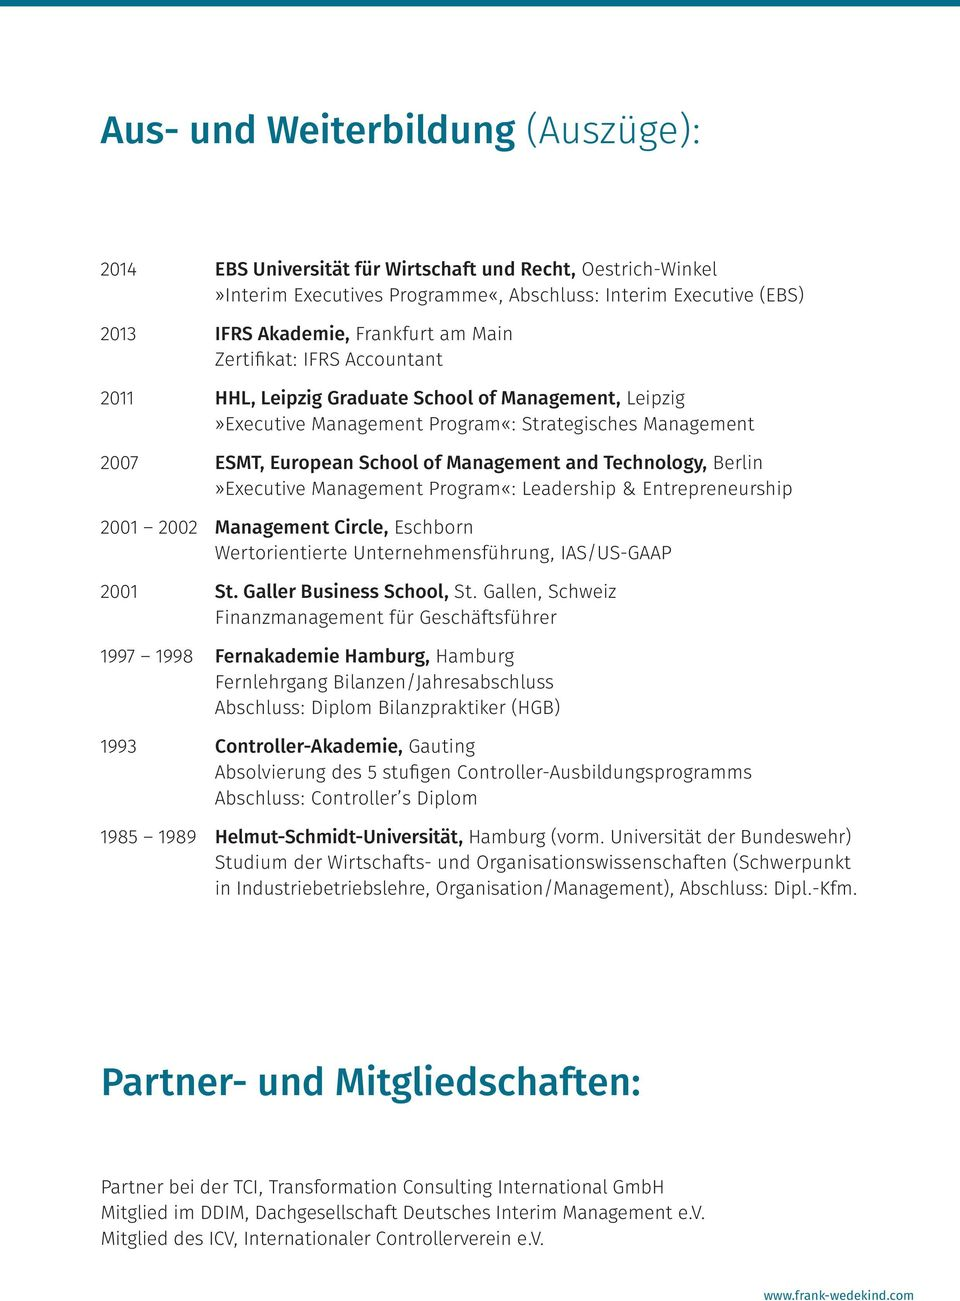 Technology, Berlin»Executive Management Program«: Leadership & Entrepreneurship 2001 2002 Management Circle, Eschborn Wertorientierte Unternehmensführung, IAS/US-GAAP 2001 St.